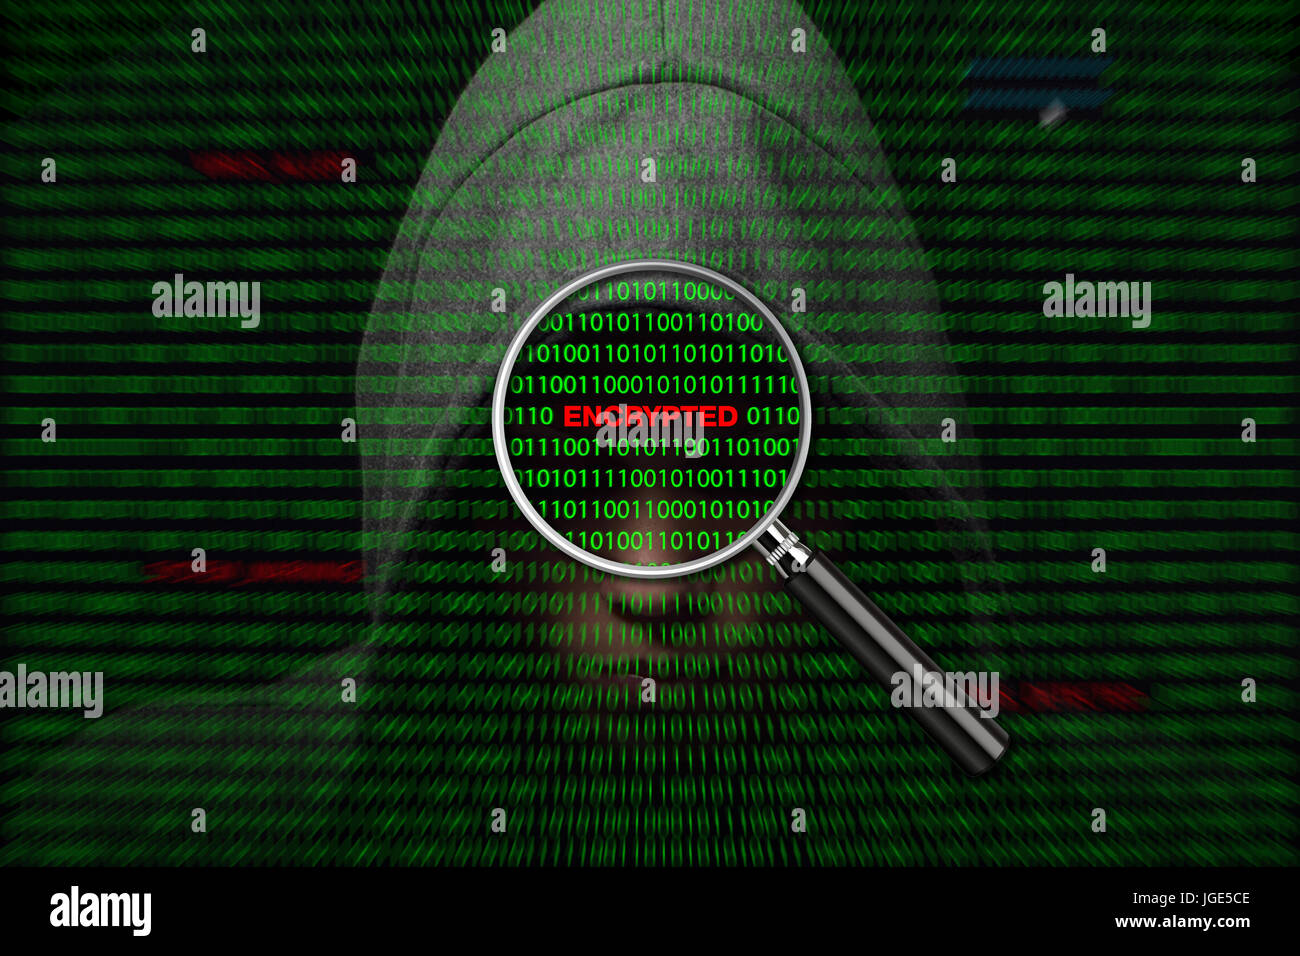 Hacker over a screen with binary code and encrypted warning messages - Stock Image